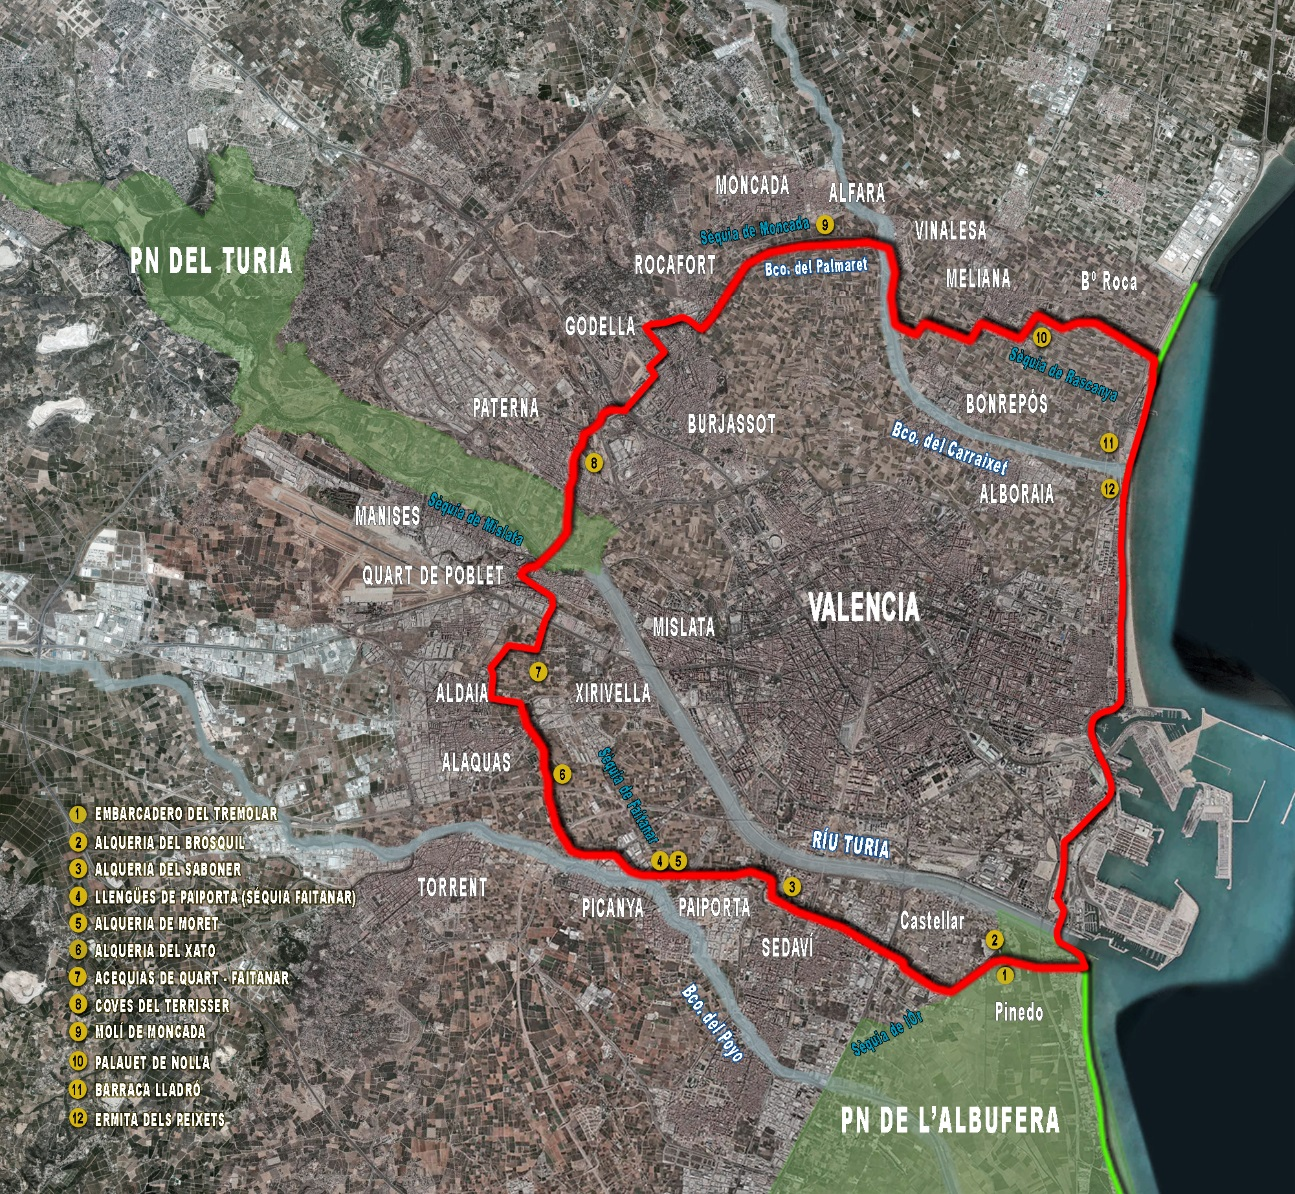 Cycling in Valencia - Urban cycling infrastructure in Valencia